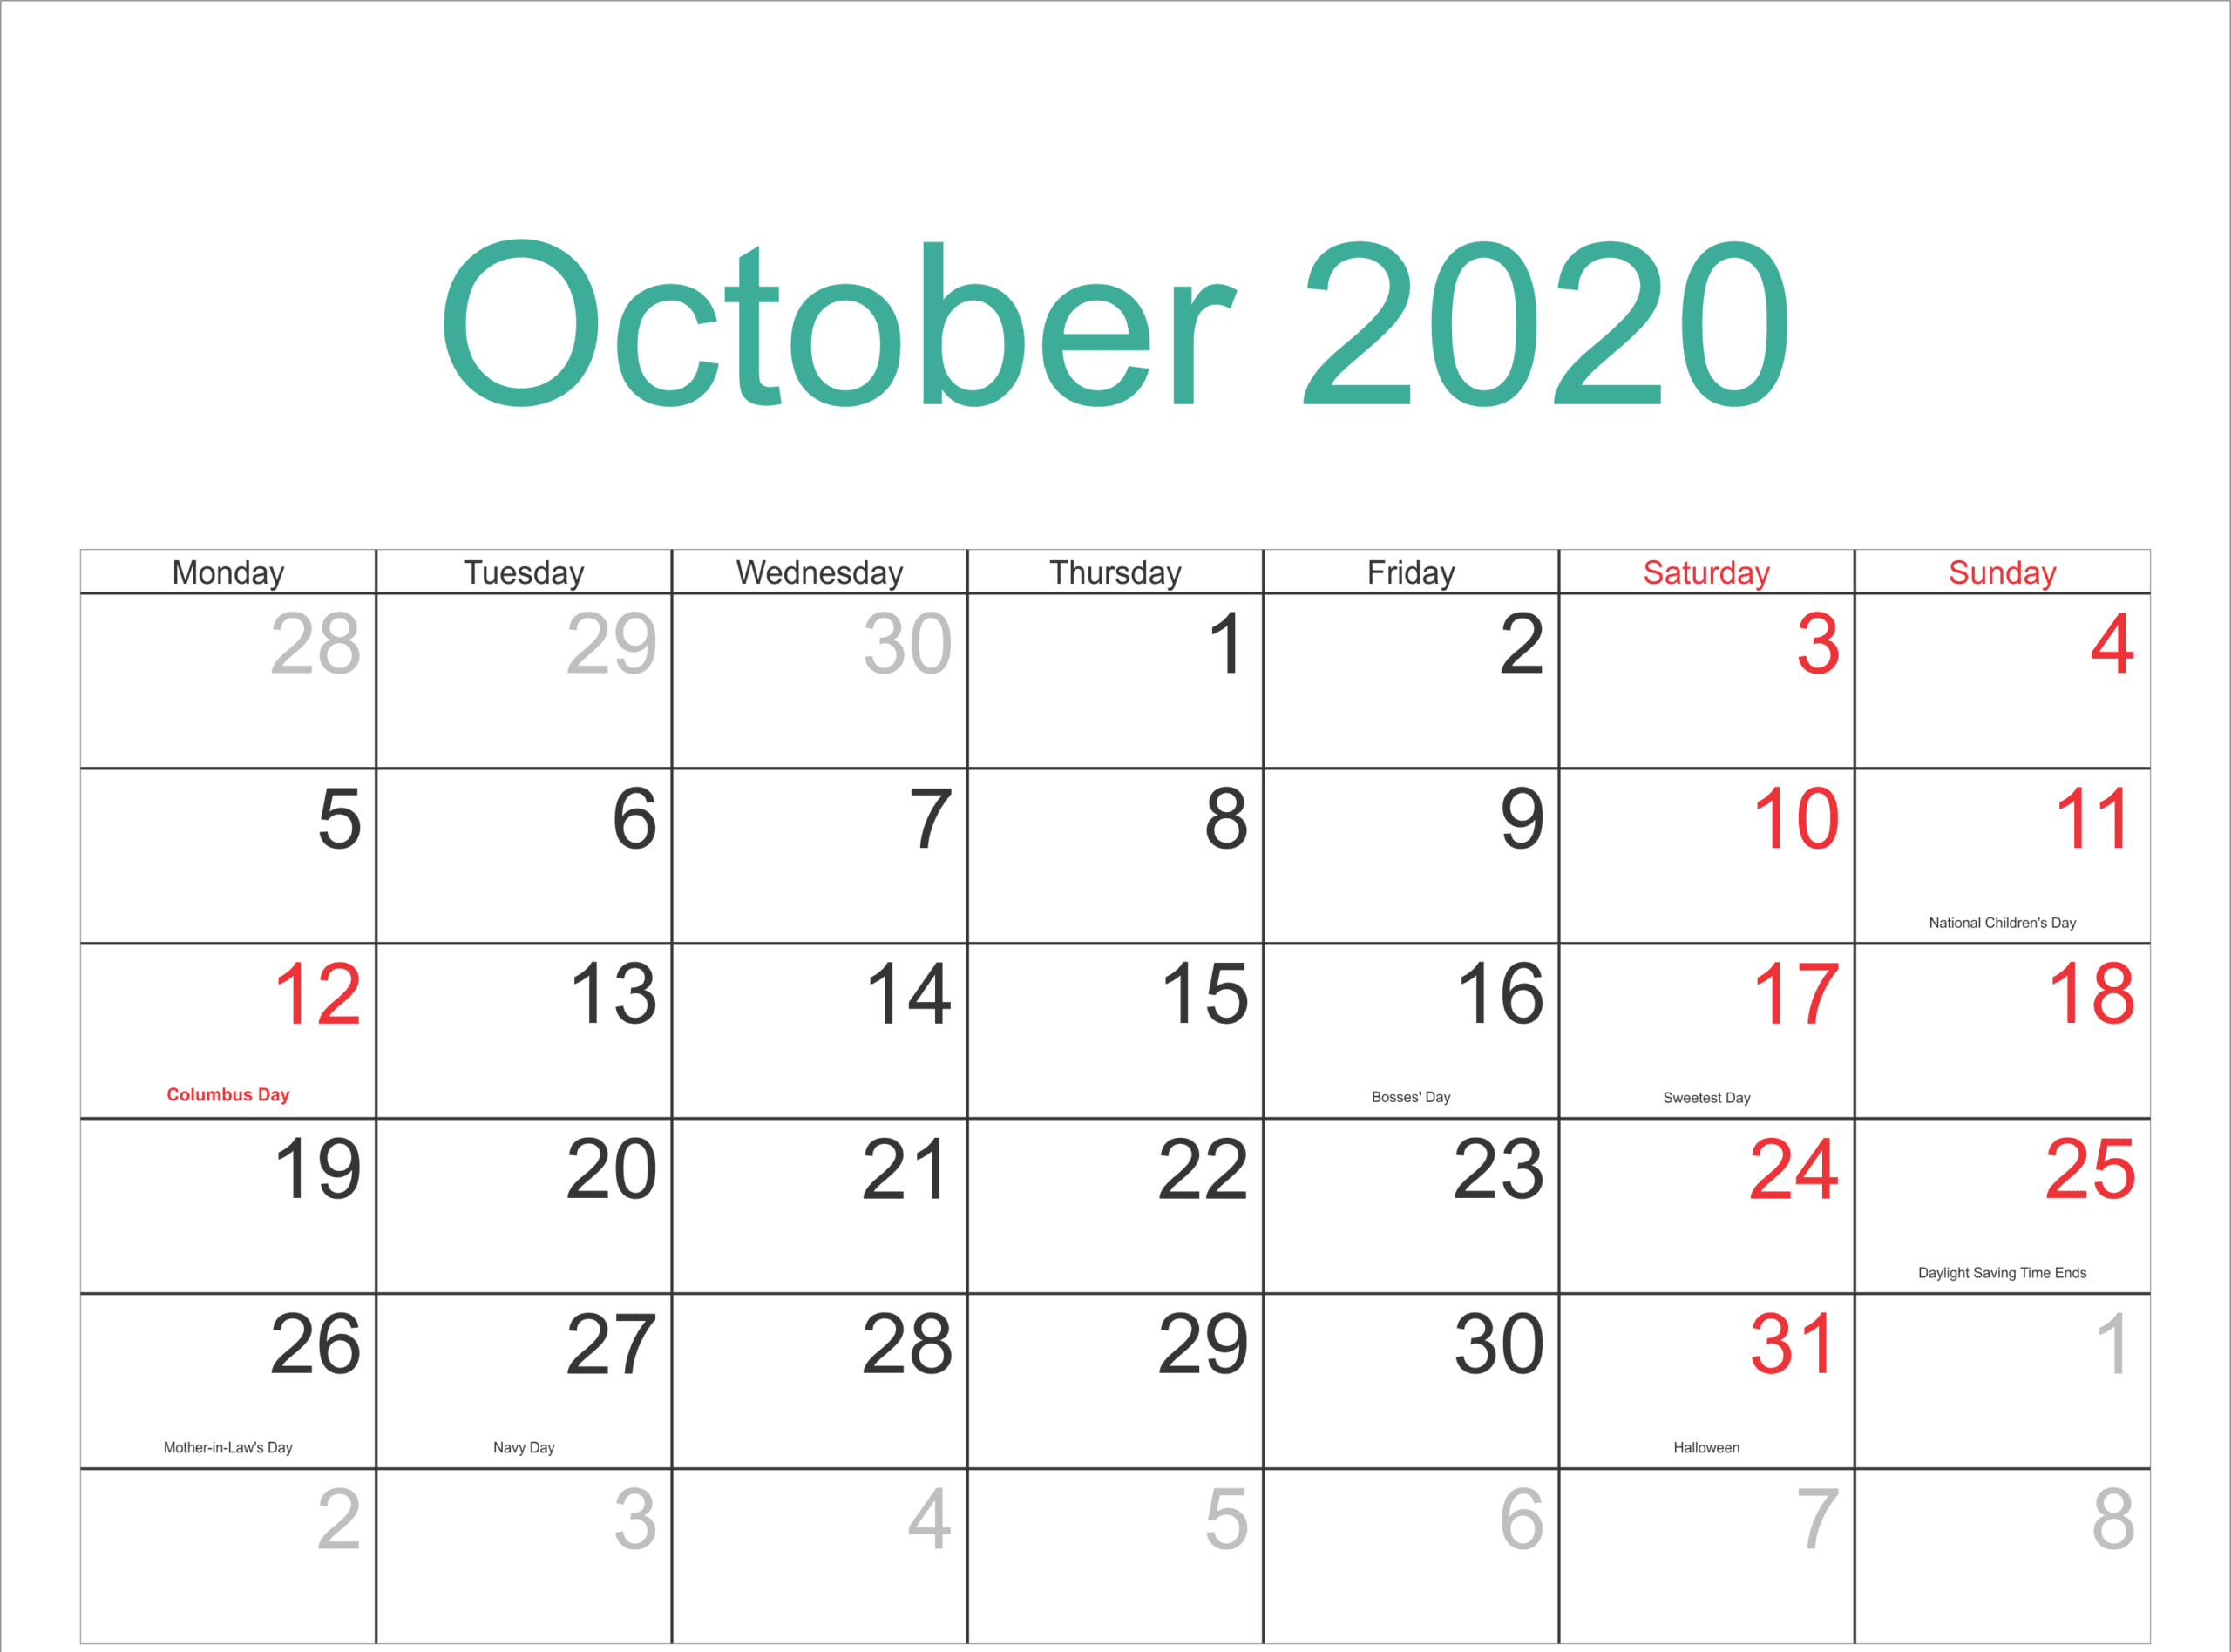 October Calendar 2020 Editable Template